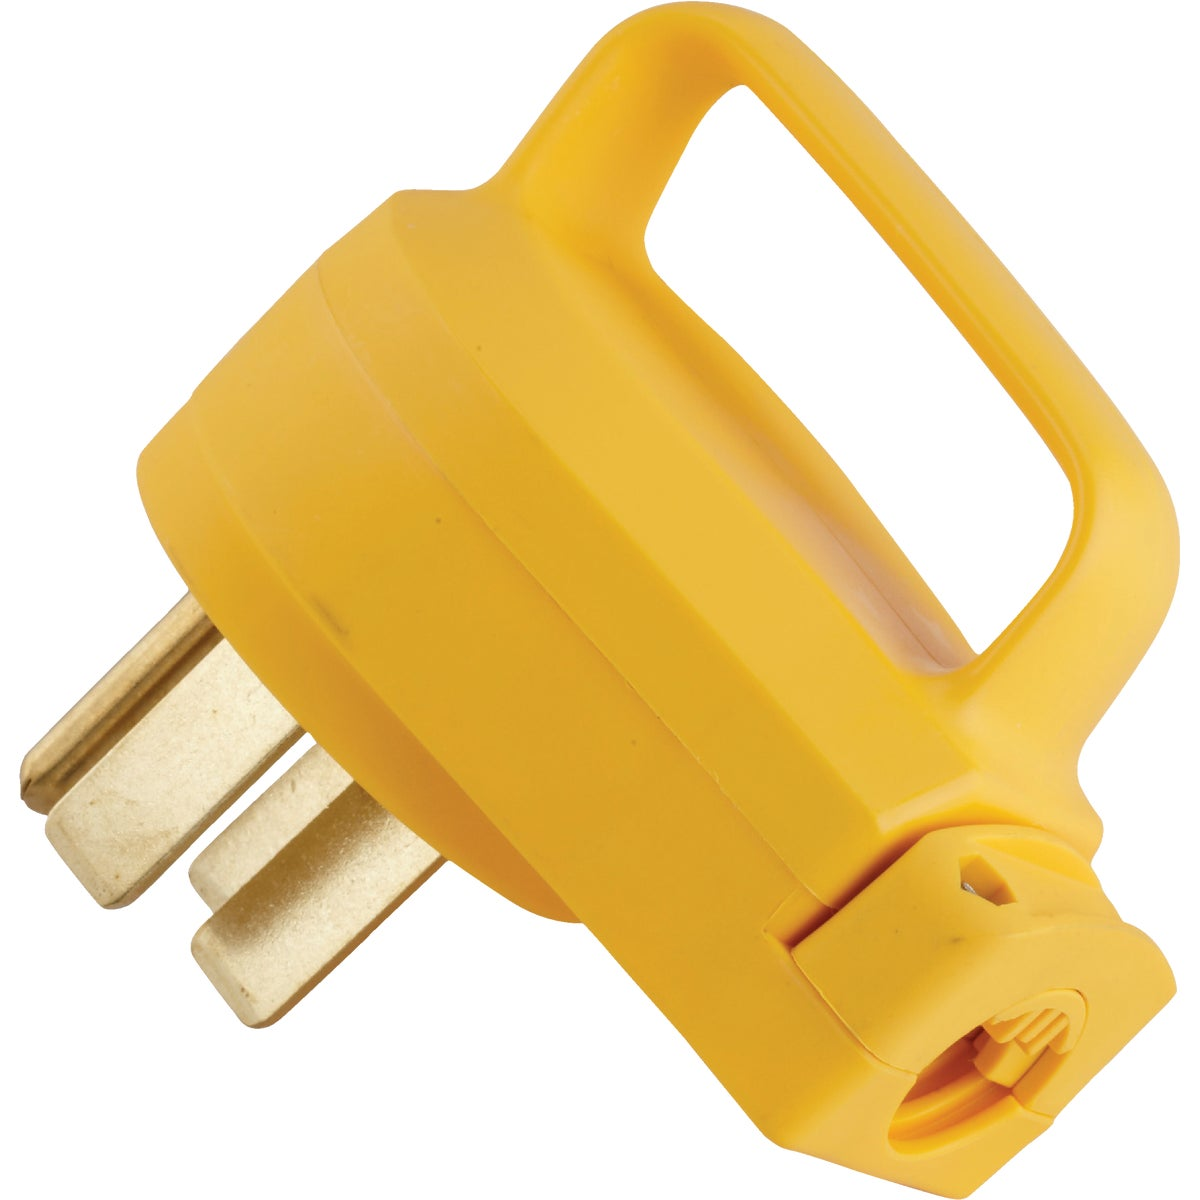 50 AMP POWER GRIP PLUG